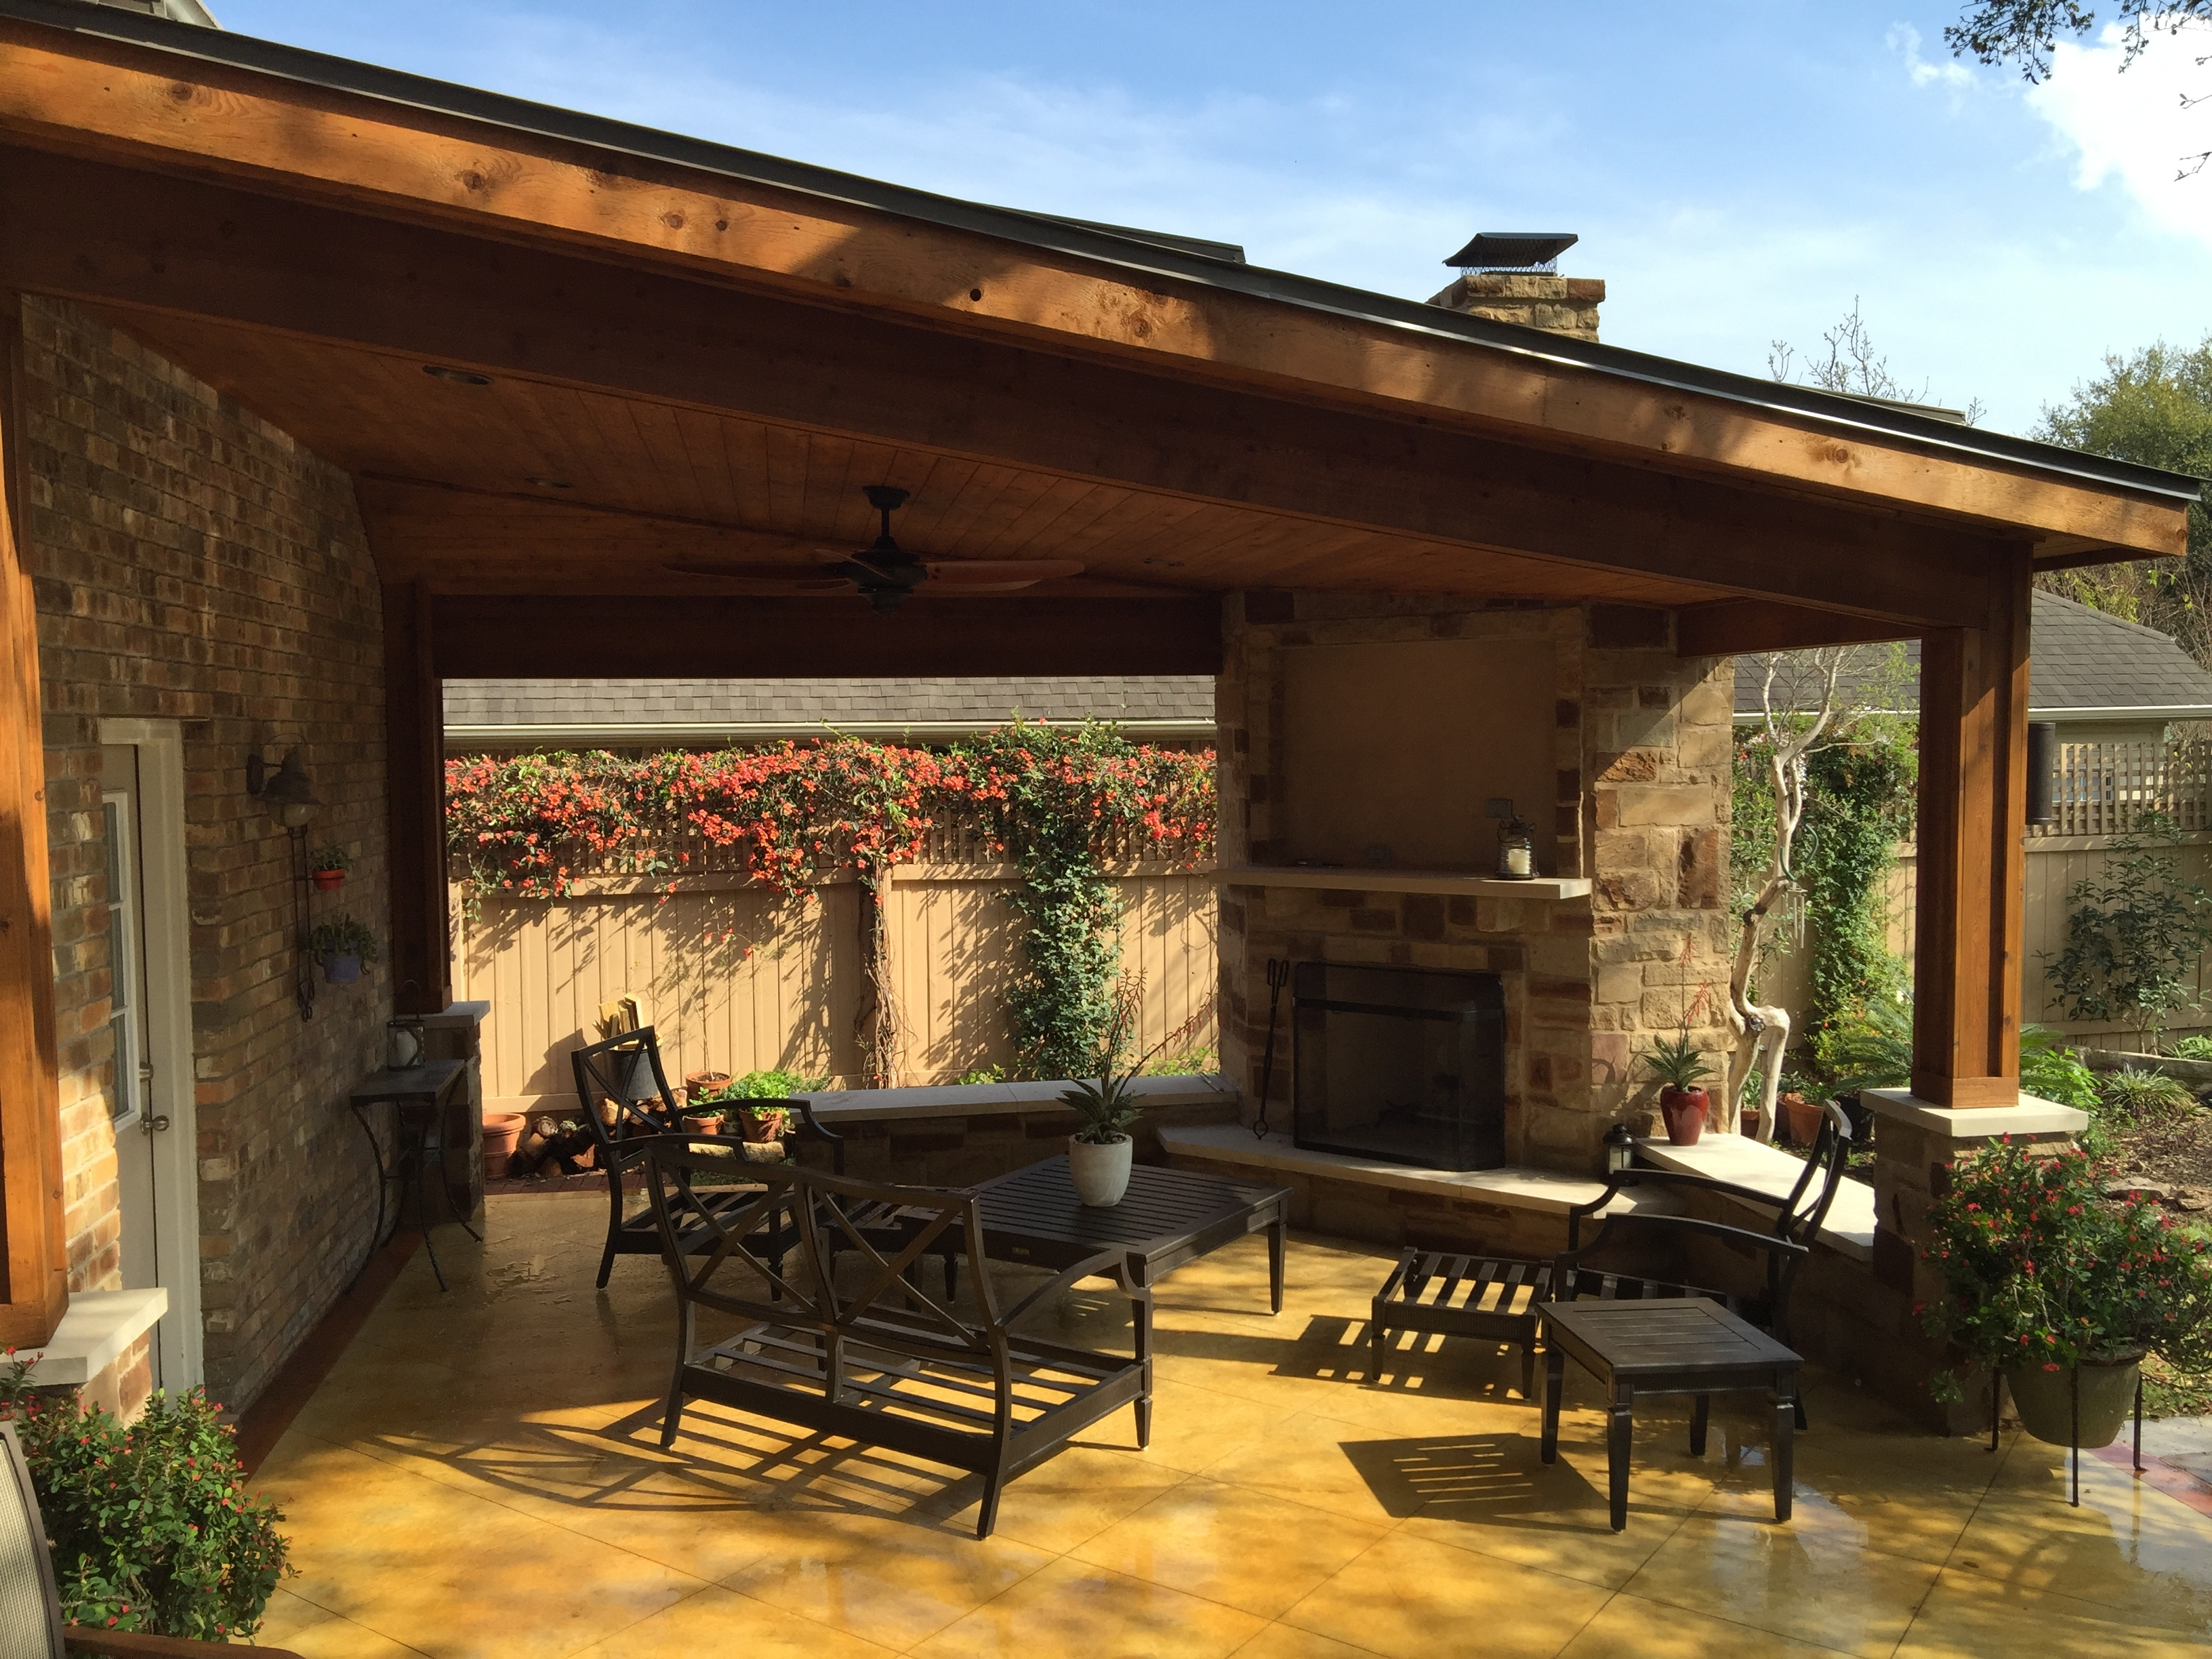 Covered Patios   Austin Decks, Pergolas, Covered Patios ... on Small Outdoor Covered Patio Ideas id=69923